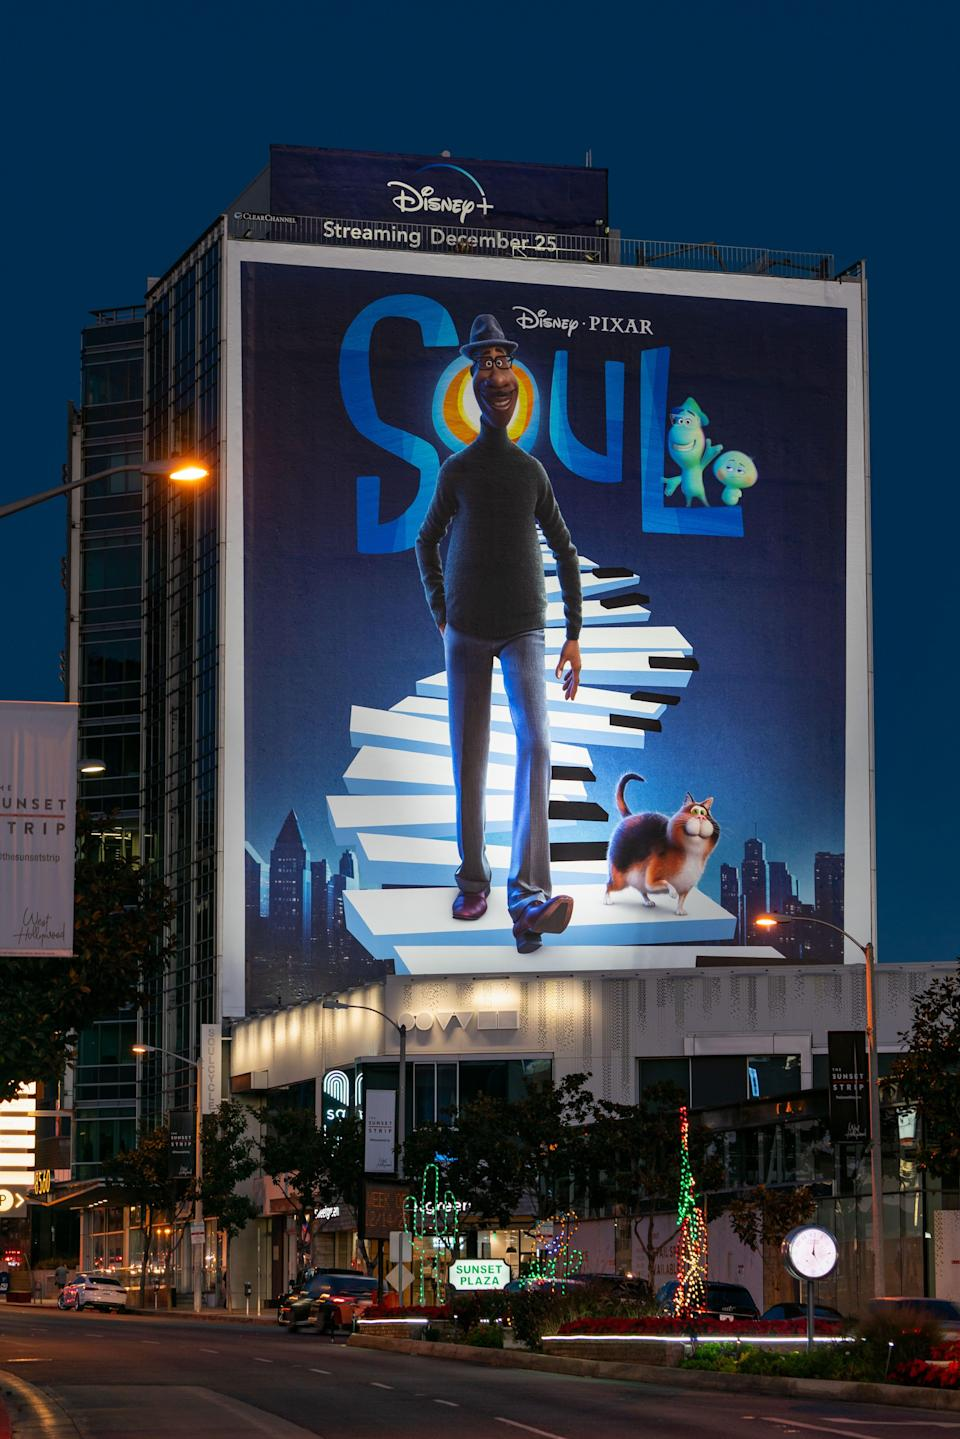 Soul skyscraper ad AaronP Bauer Griffin GC Images Getty